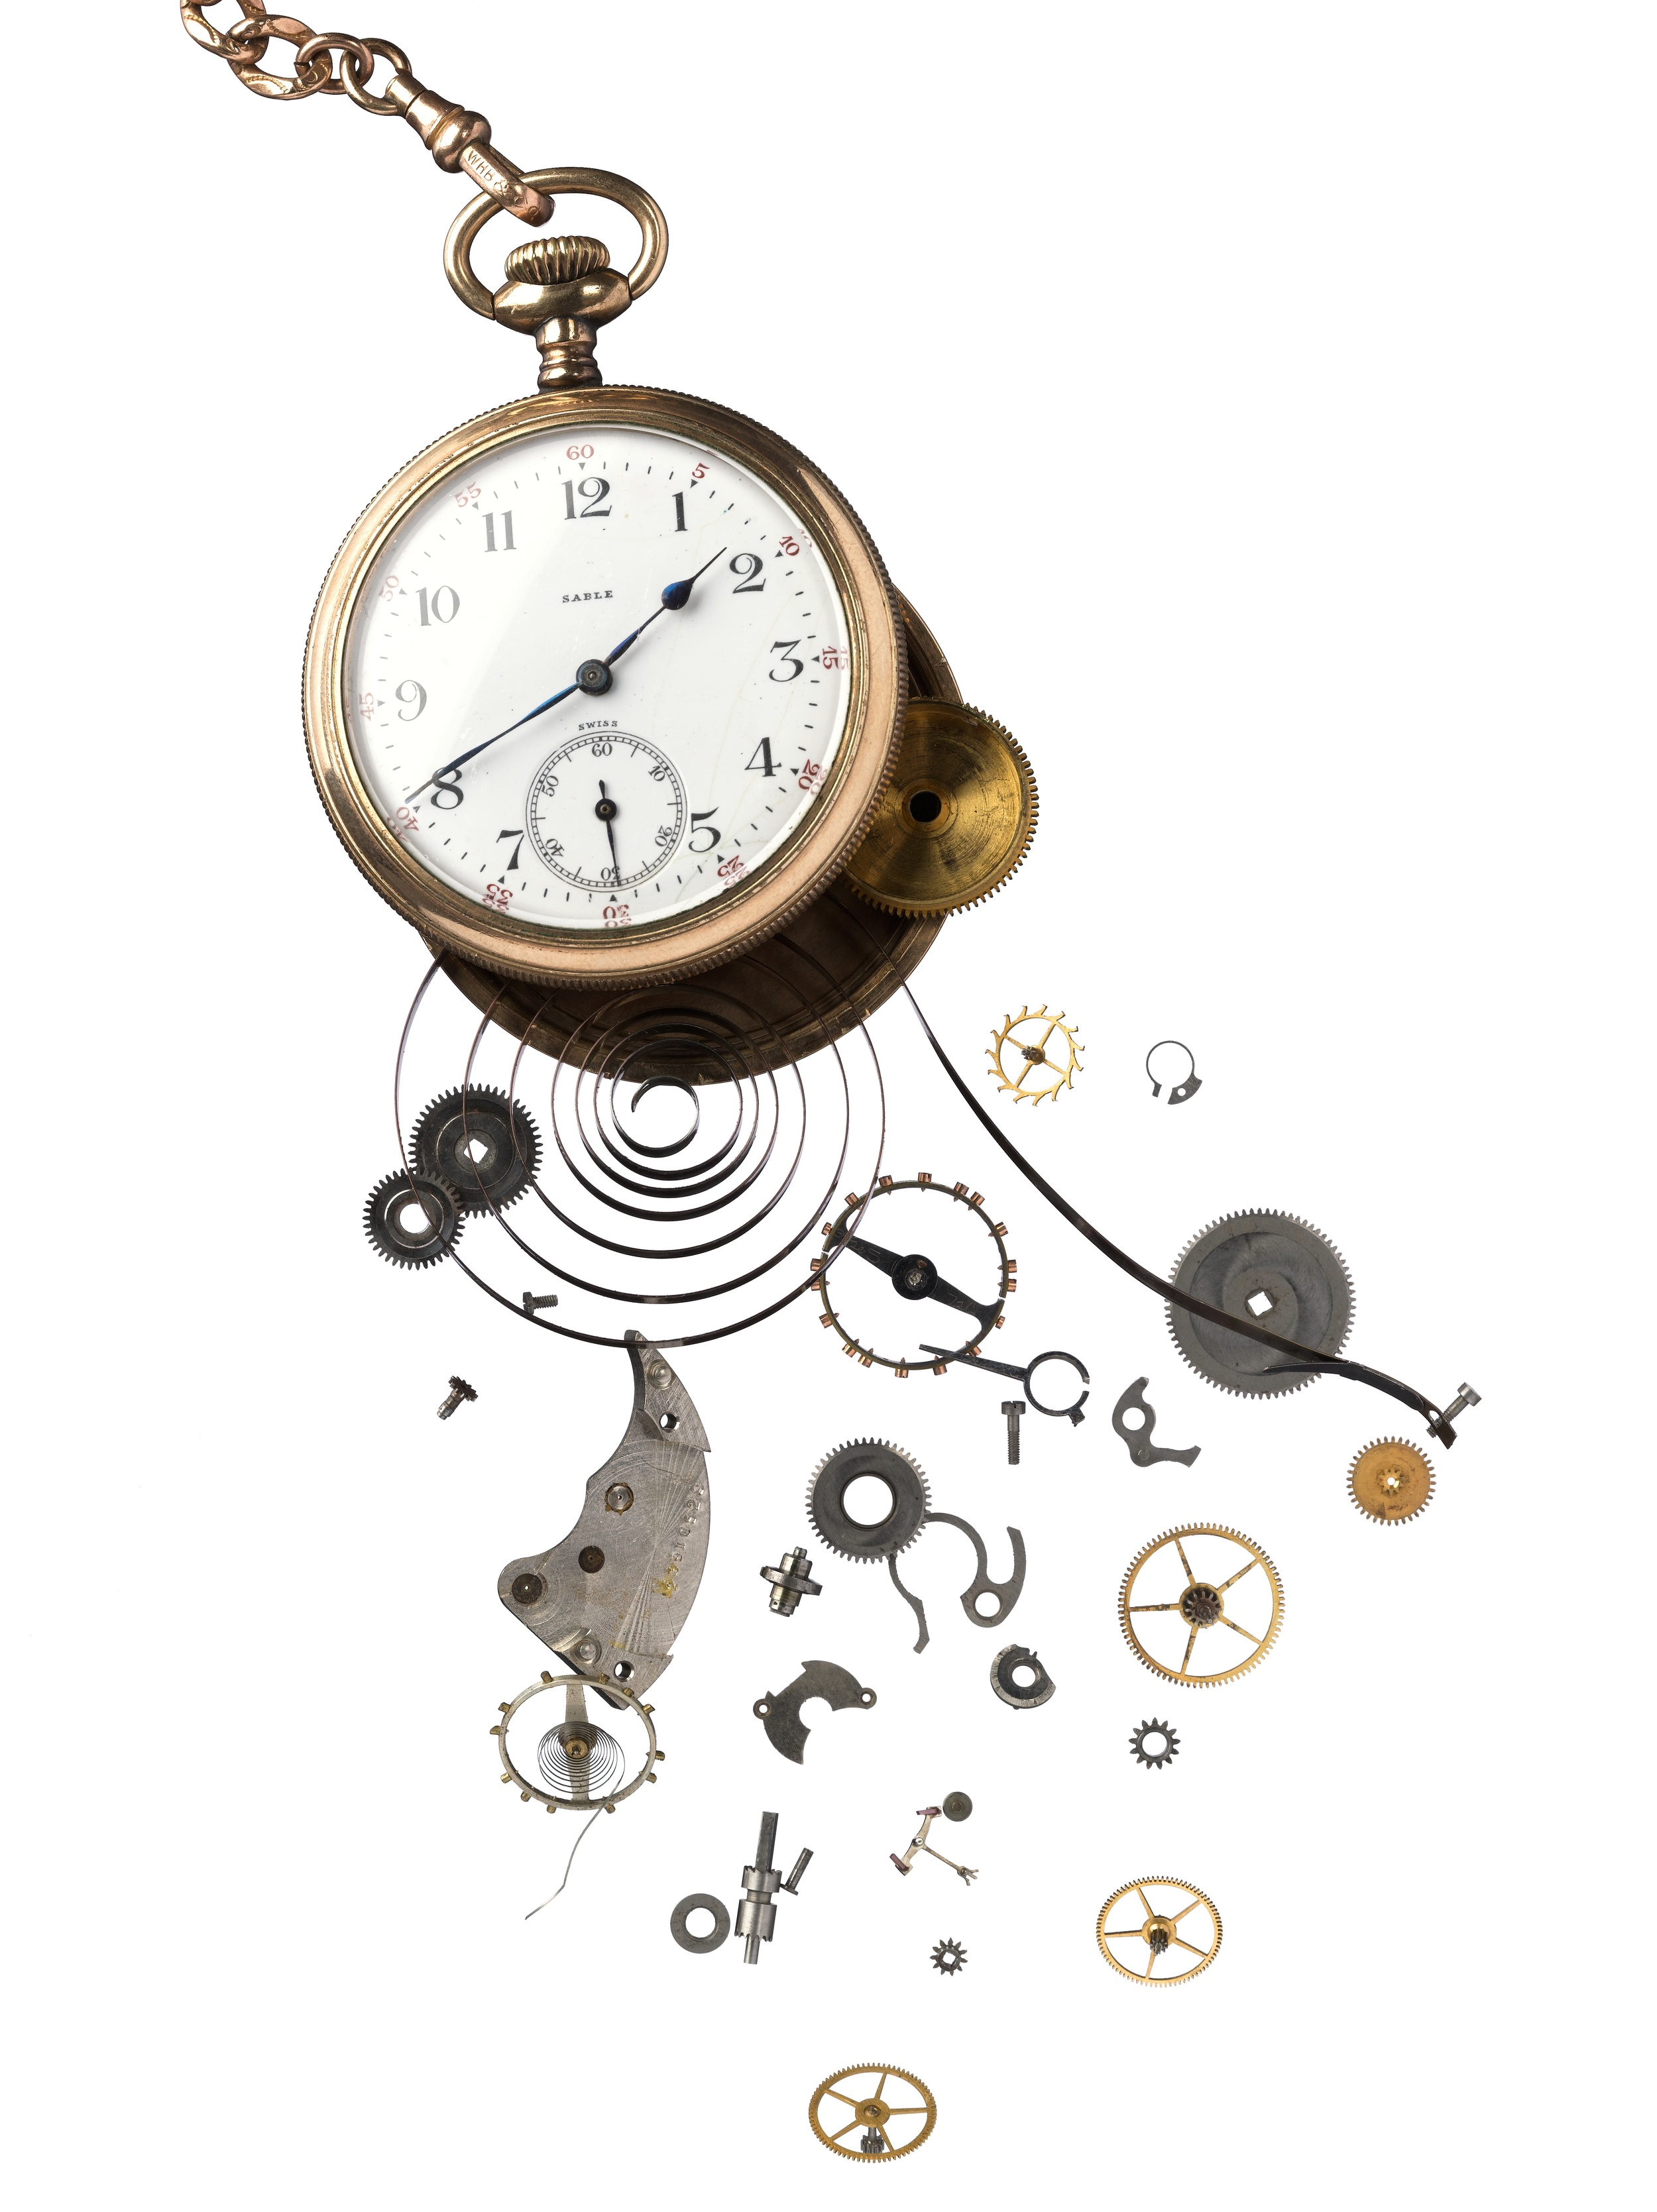 004 pocket watch.jpg